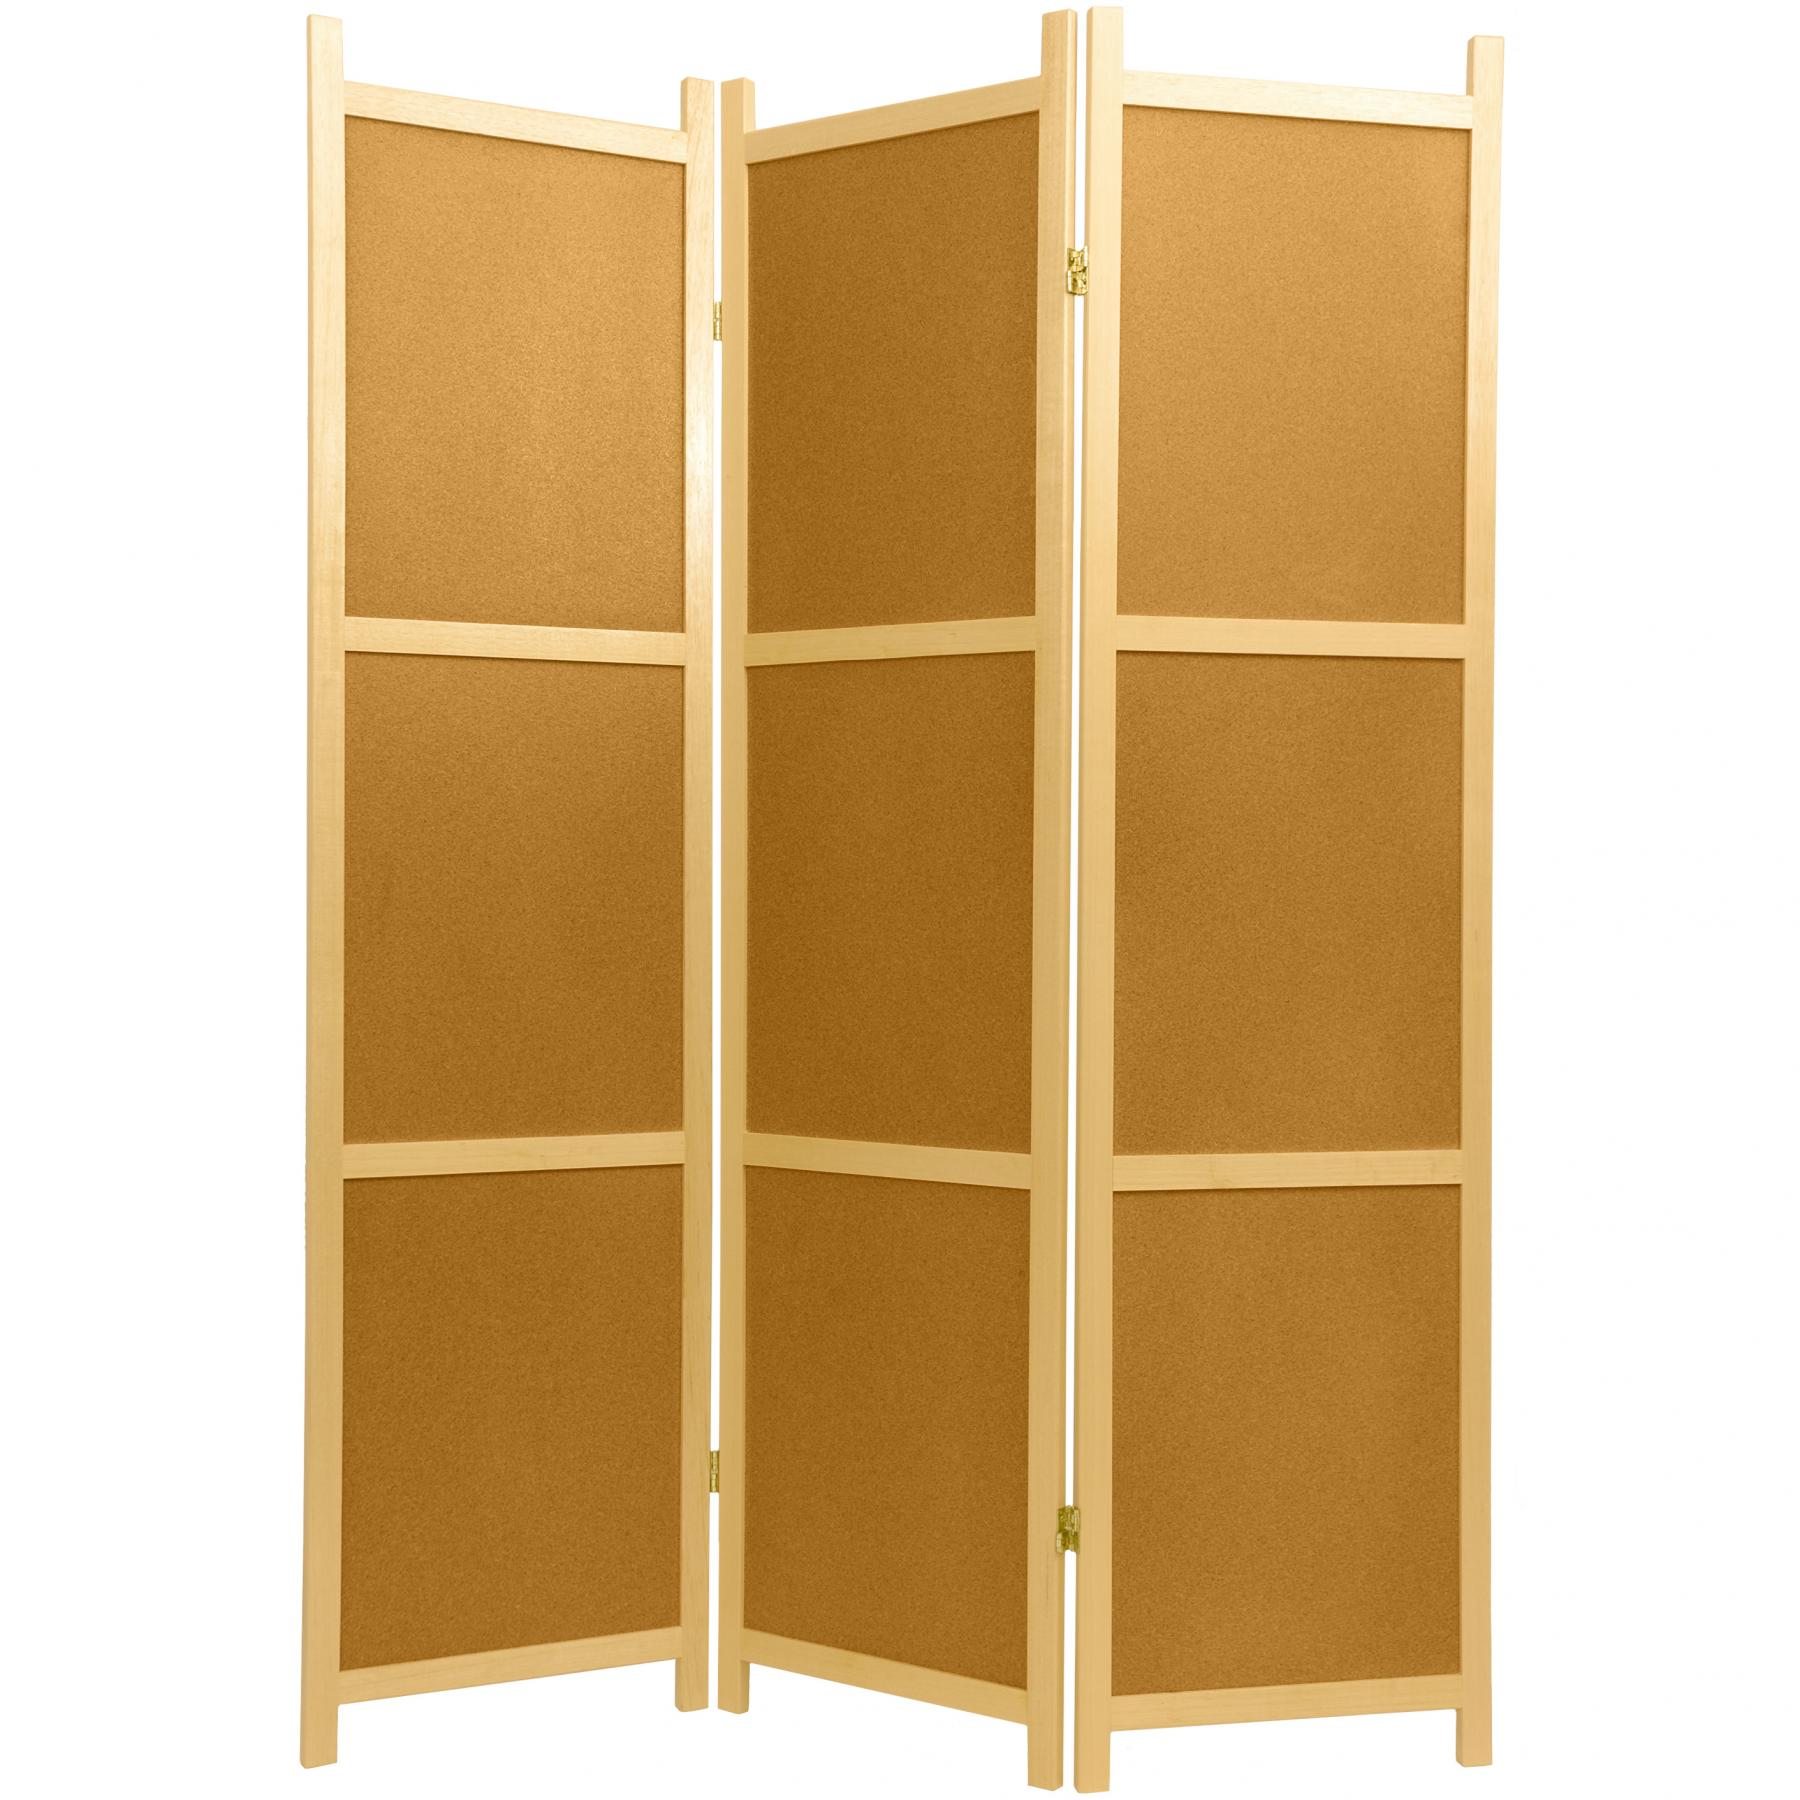 6 ft tall cork board shoji screen